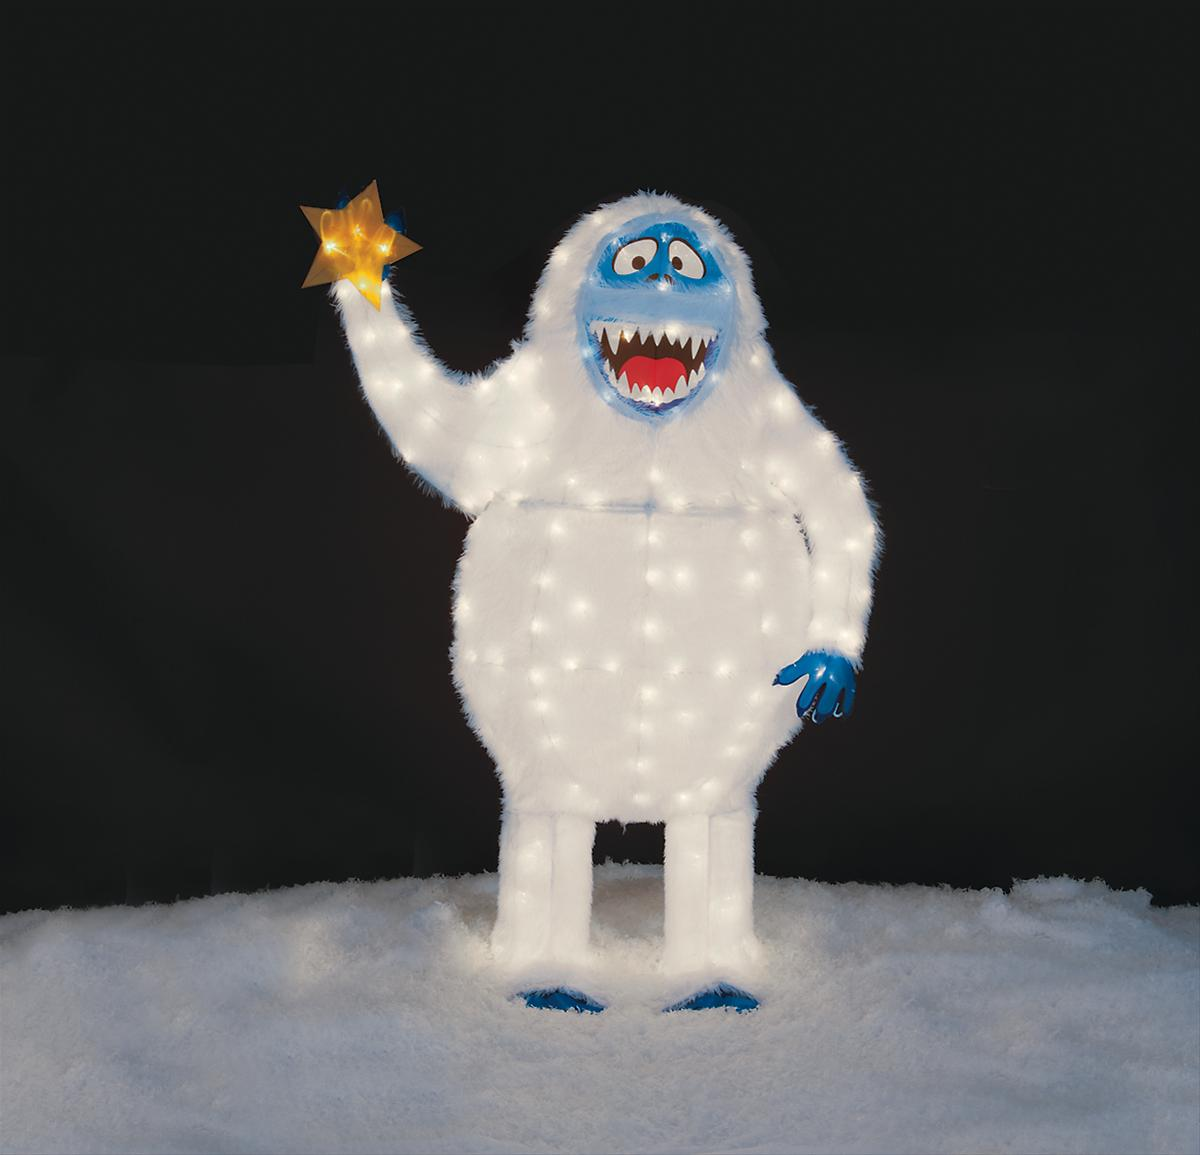 56 bumble tinsel light lawn decoration 50545 free for Abominable snowman outdoor christmas decoration